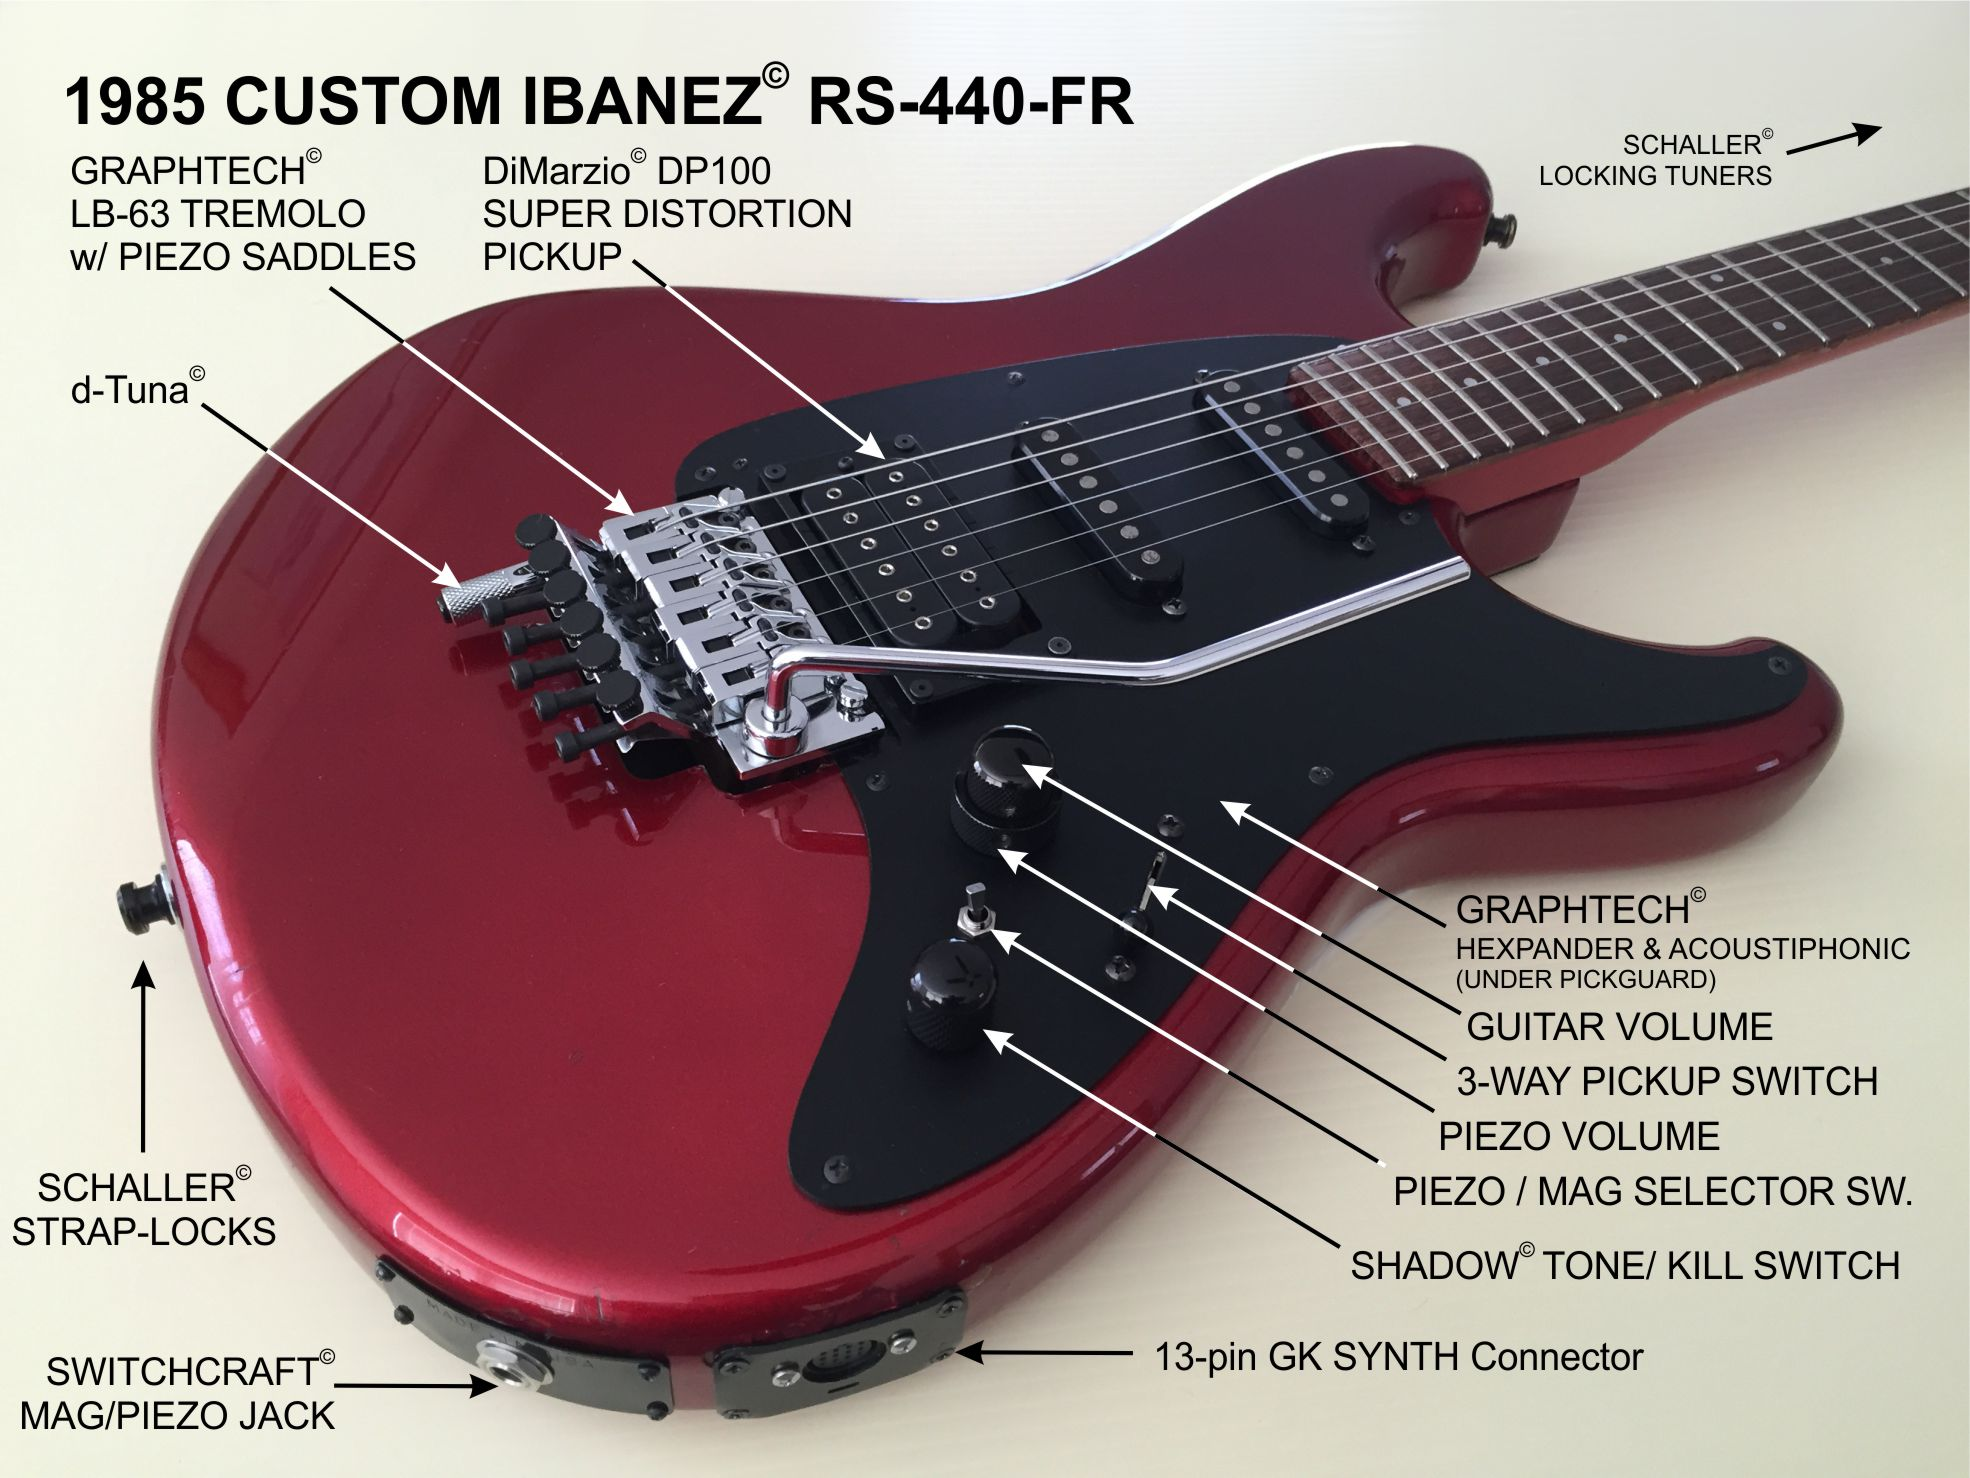 2wire humbucker wiring diagrams ibanez car engine diagram for Humbucker Pickup Wiring Diagram  2 Humbucker Wiring Diagrams A 2 Wire Humbucker Pickup Wiring Ibanez Les Paul Wiring Diagram